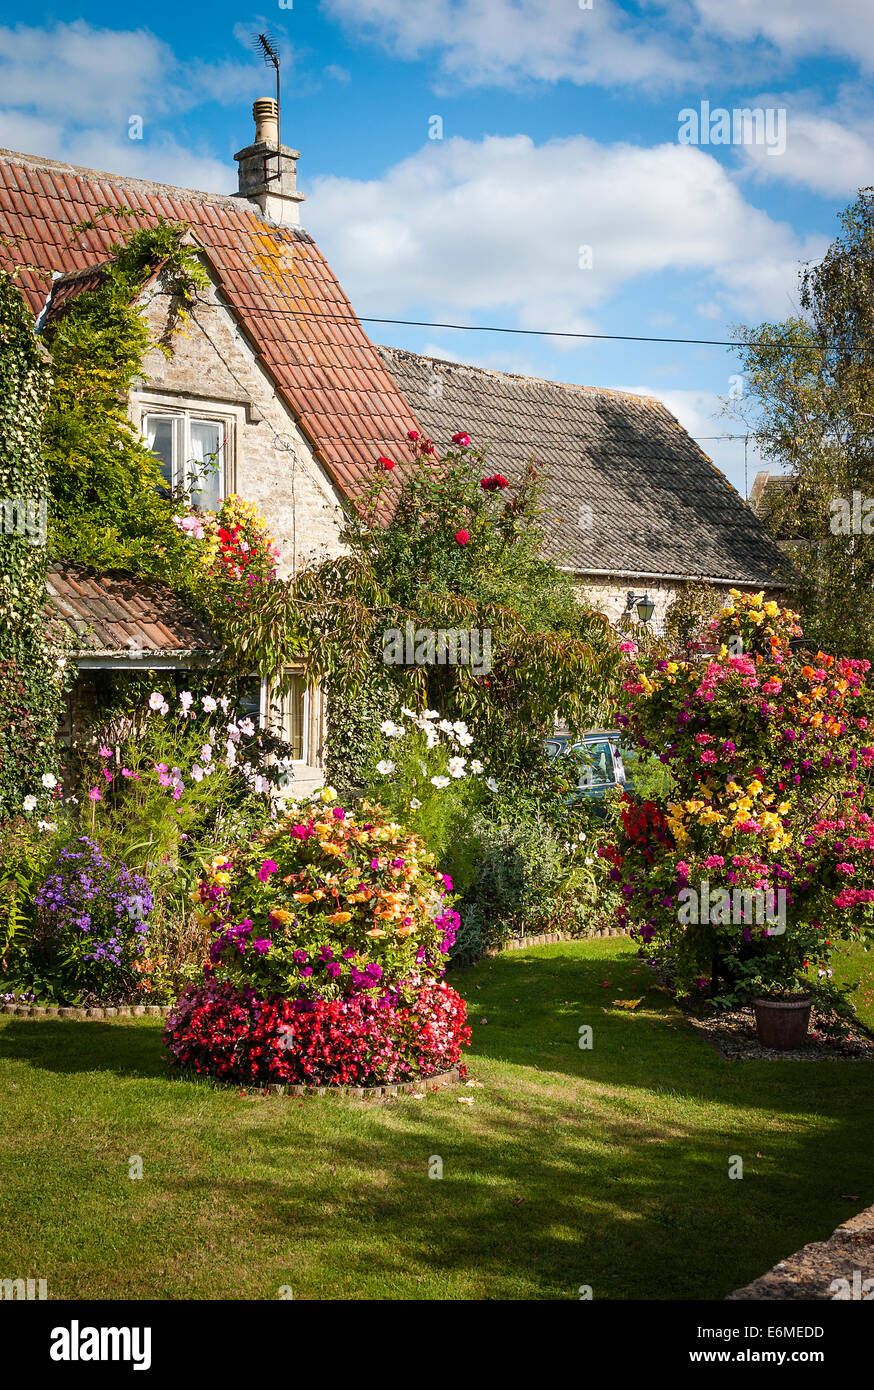 Small front flower garden in an English village - Stock Image